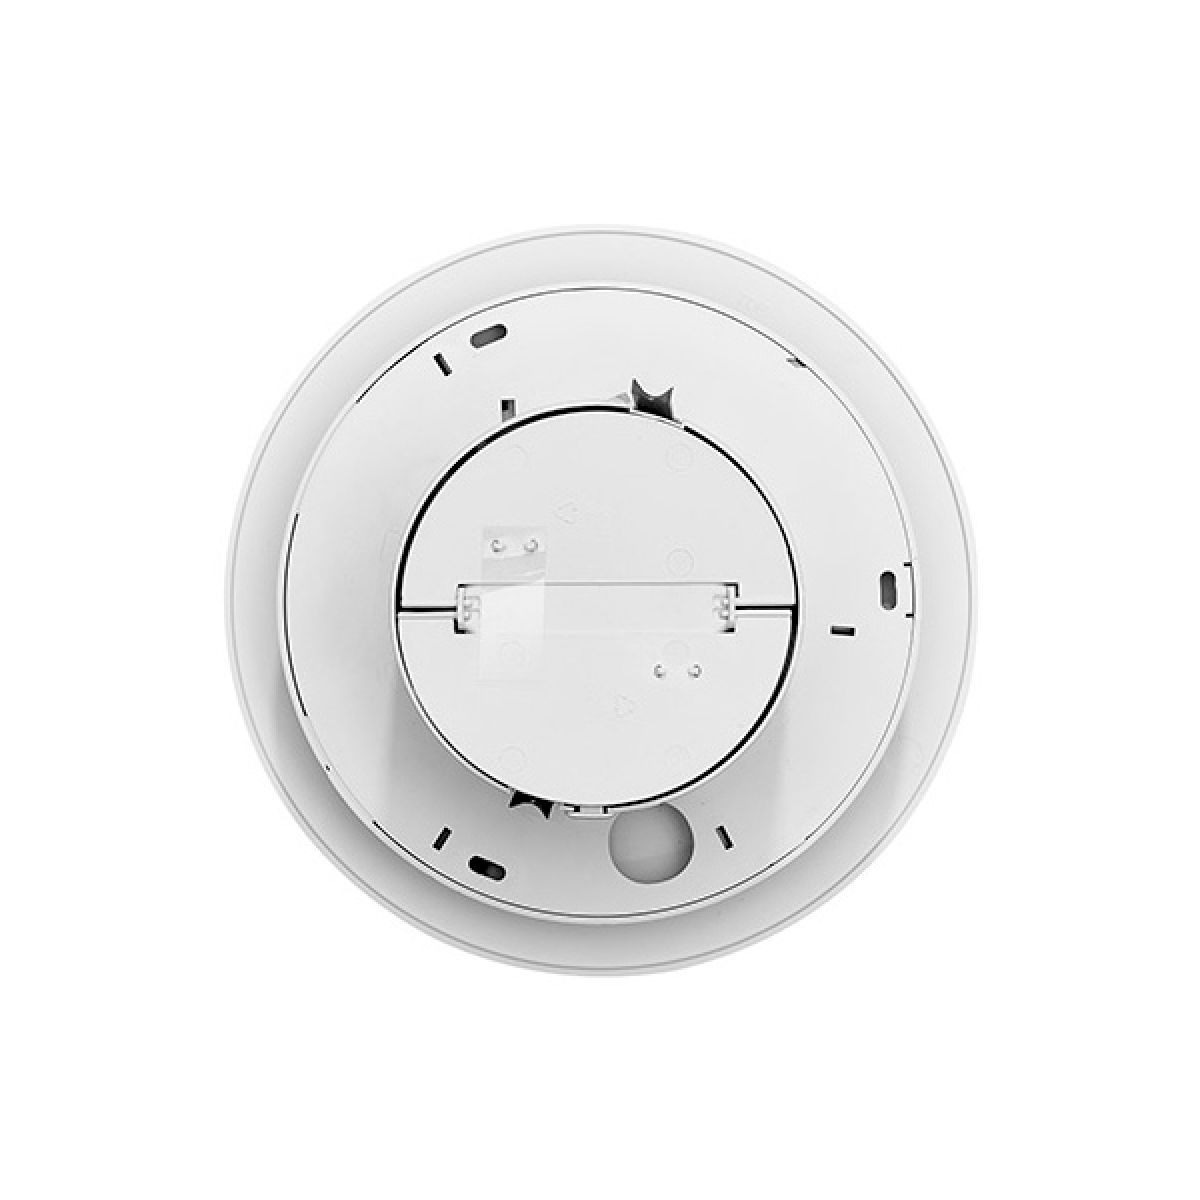 Xpelair Simply Silent Contour Round Bathroom Fan with Pullcord 100mm - Back